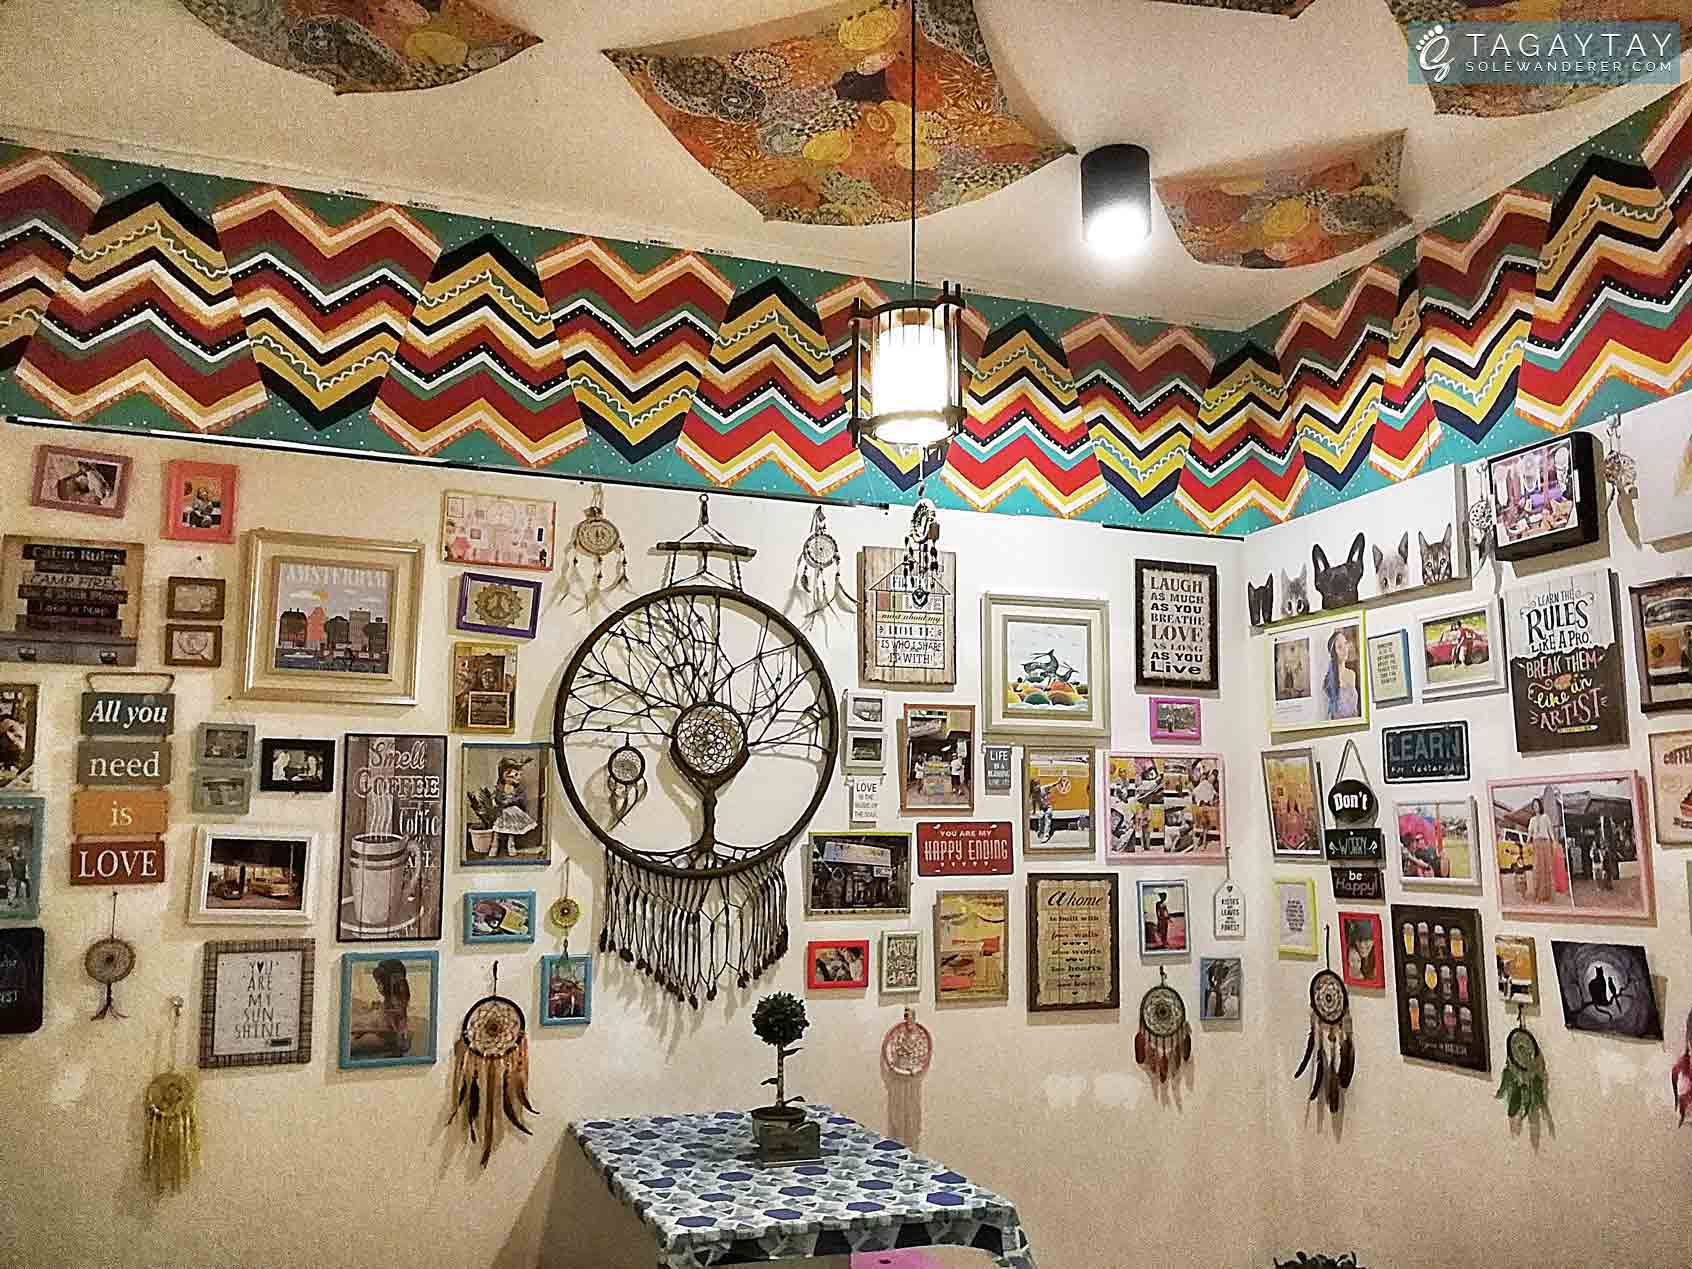 More Crafts at the Café Walls